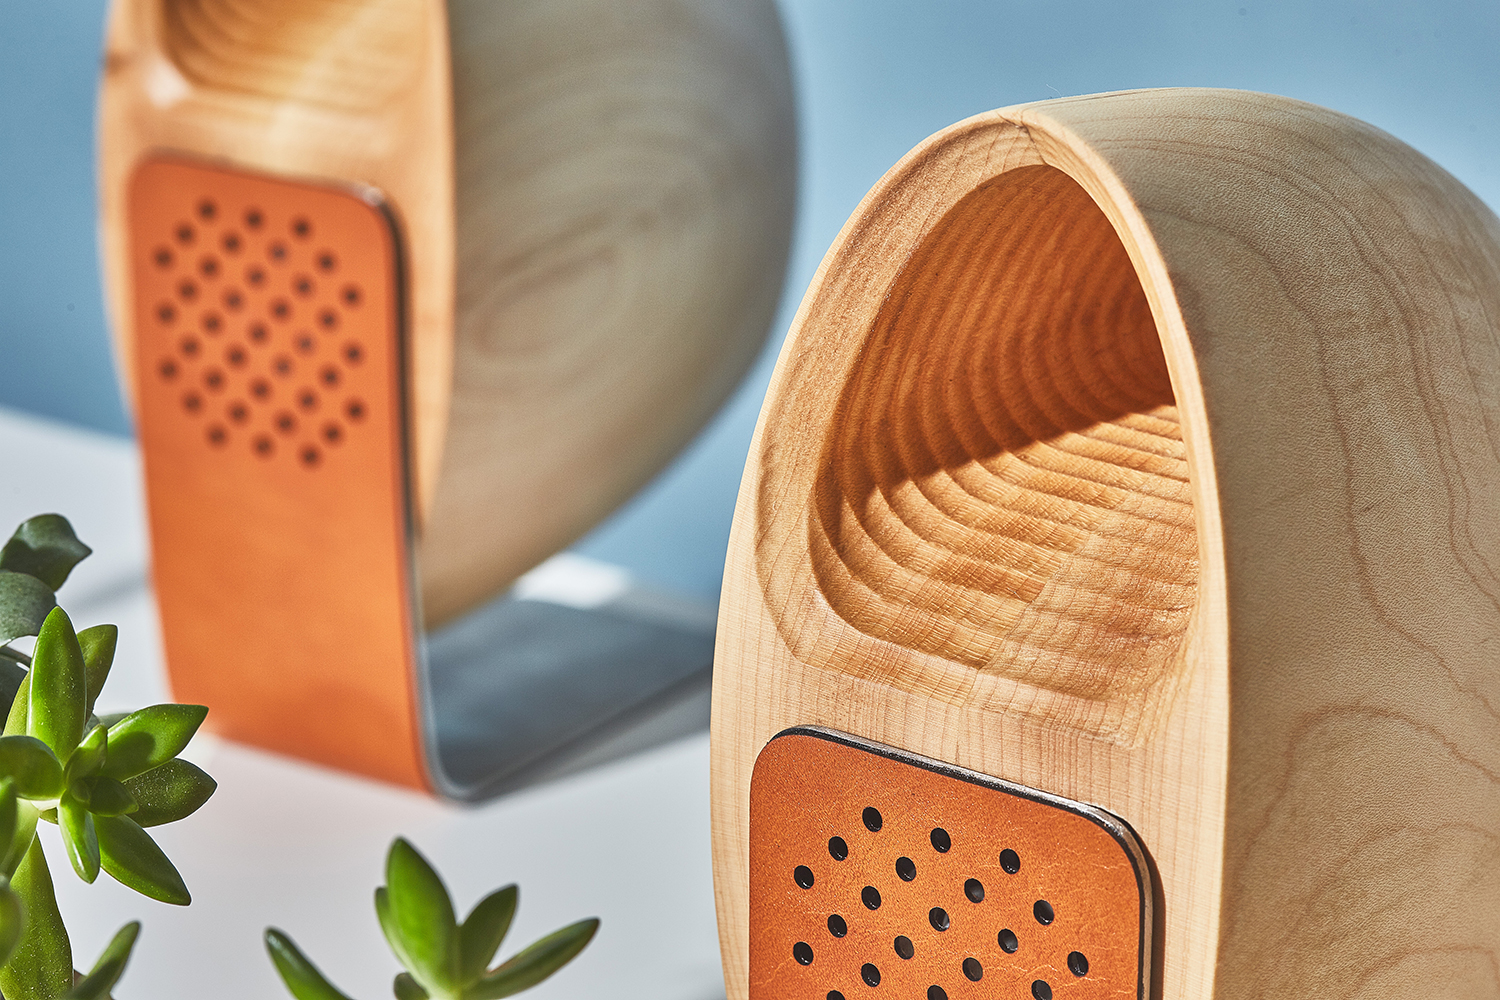 grovemade-wooden-speakers-06